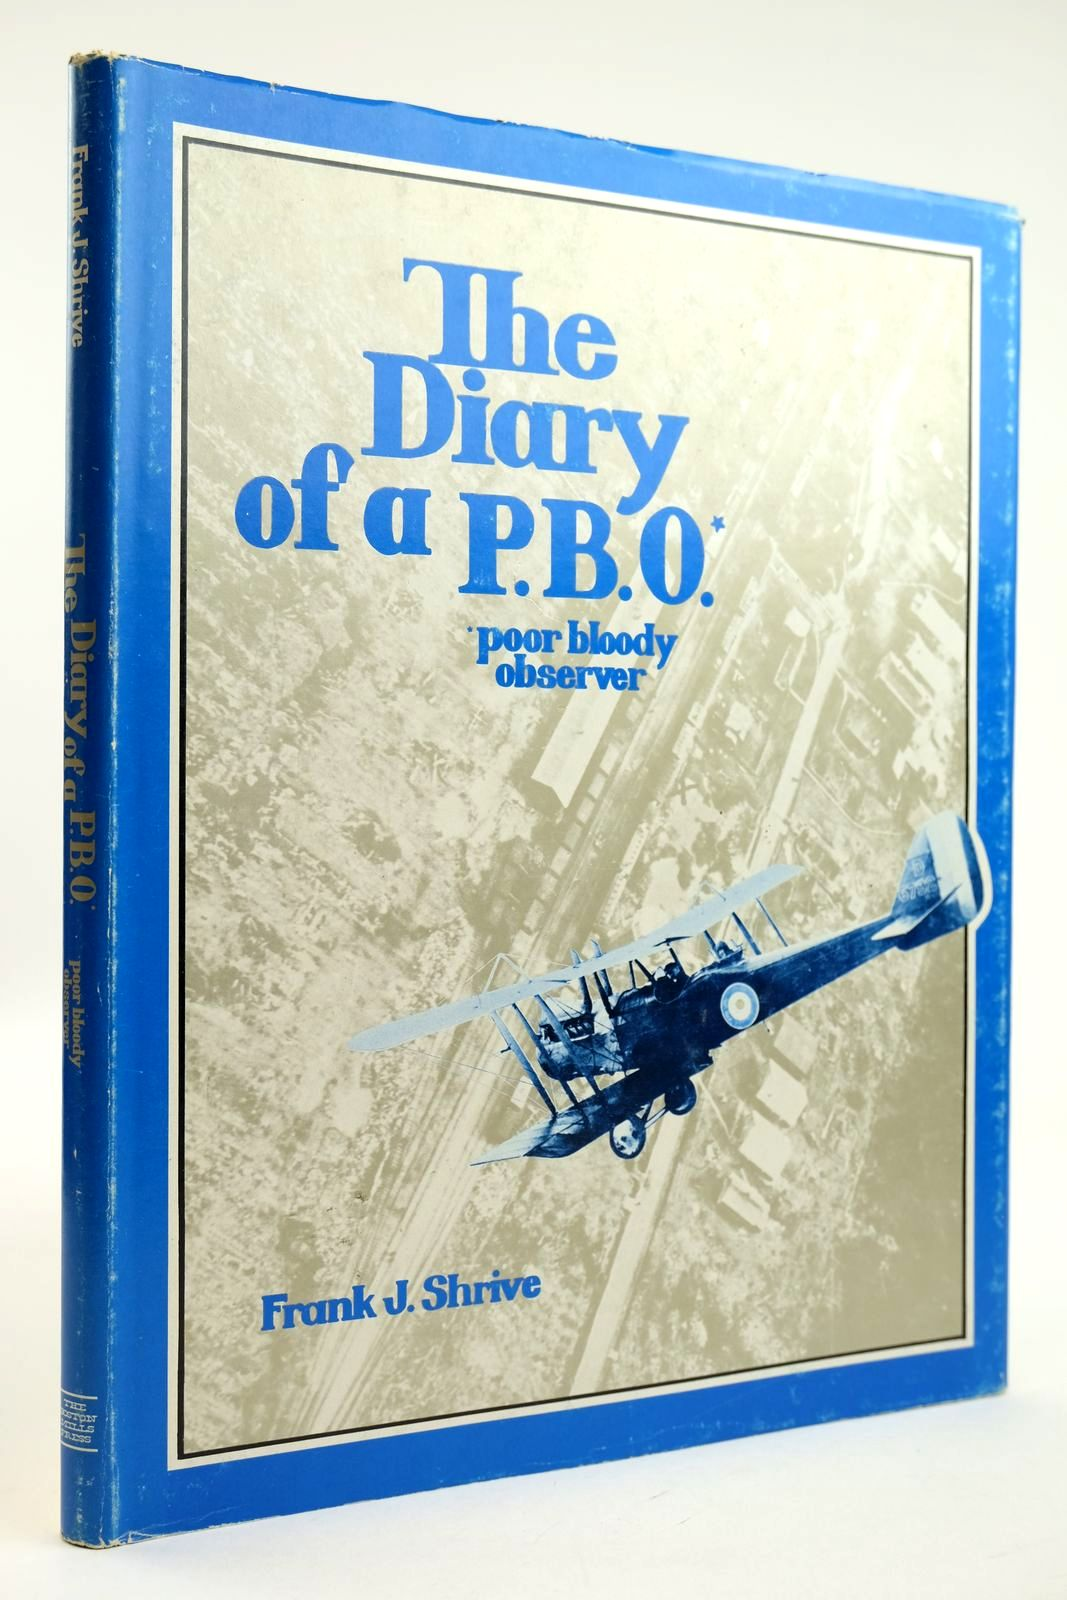 Photo of THE DIARY OF A P.B.O POOR BLOODY OBSERVER written by Shrive, Frank J. Shrive, Norman Johnston, Robert H. published by The Boston Mills Press (STOCK CODE: 2132205)  for sale by Stella & Rose's Books